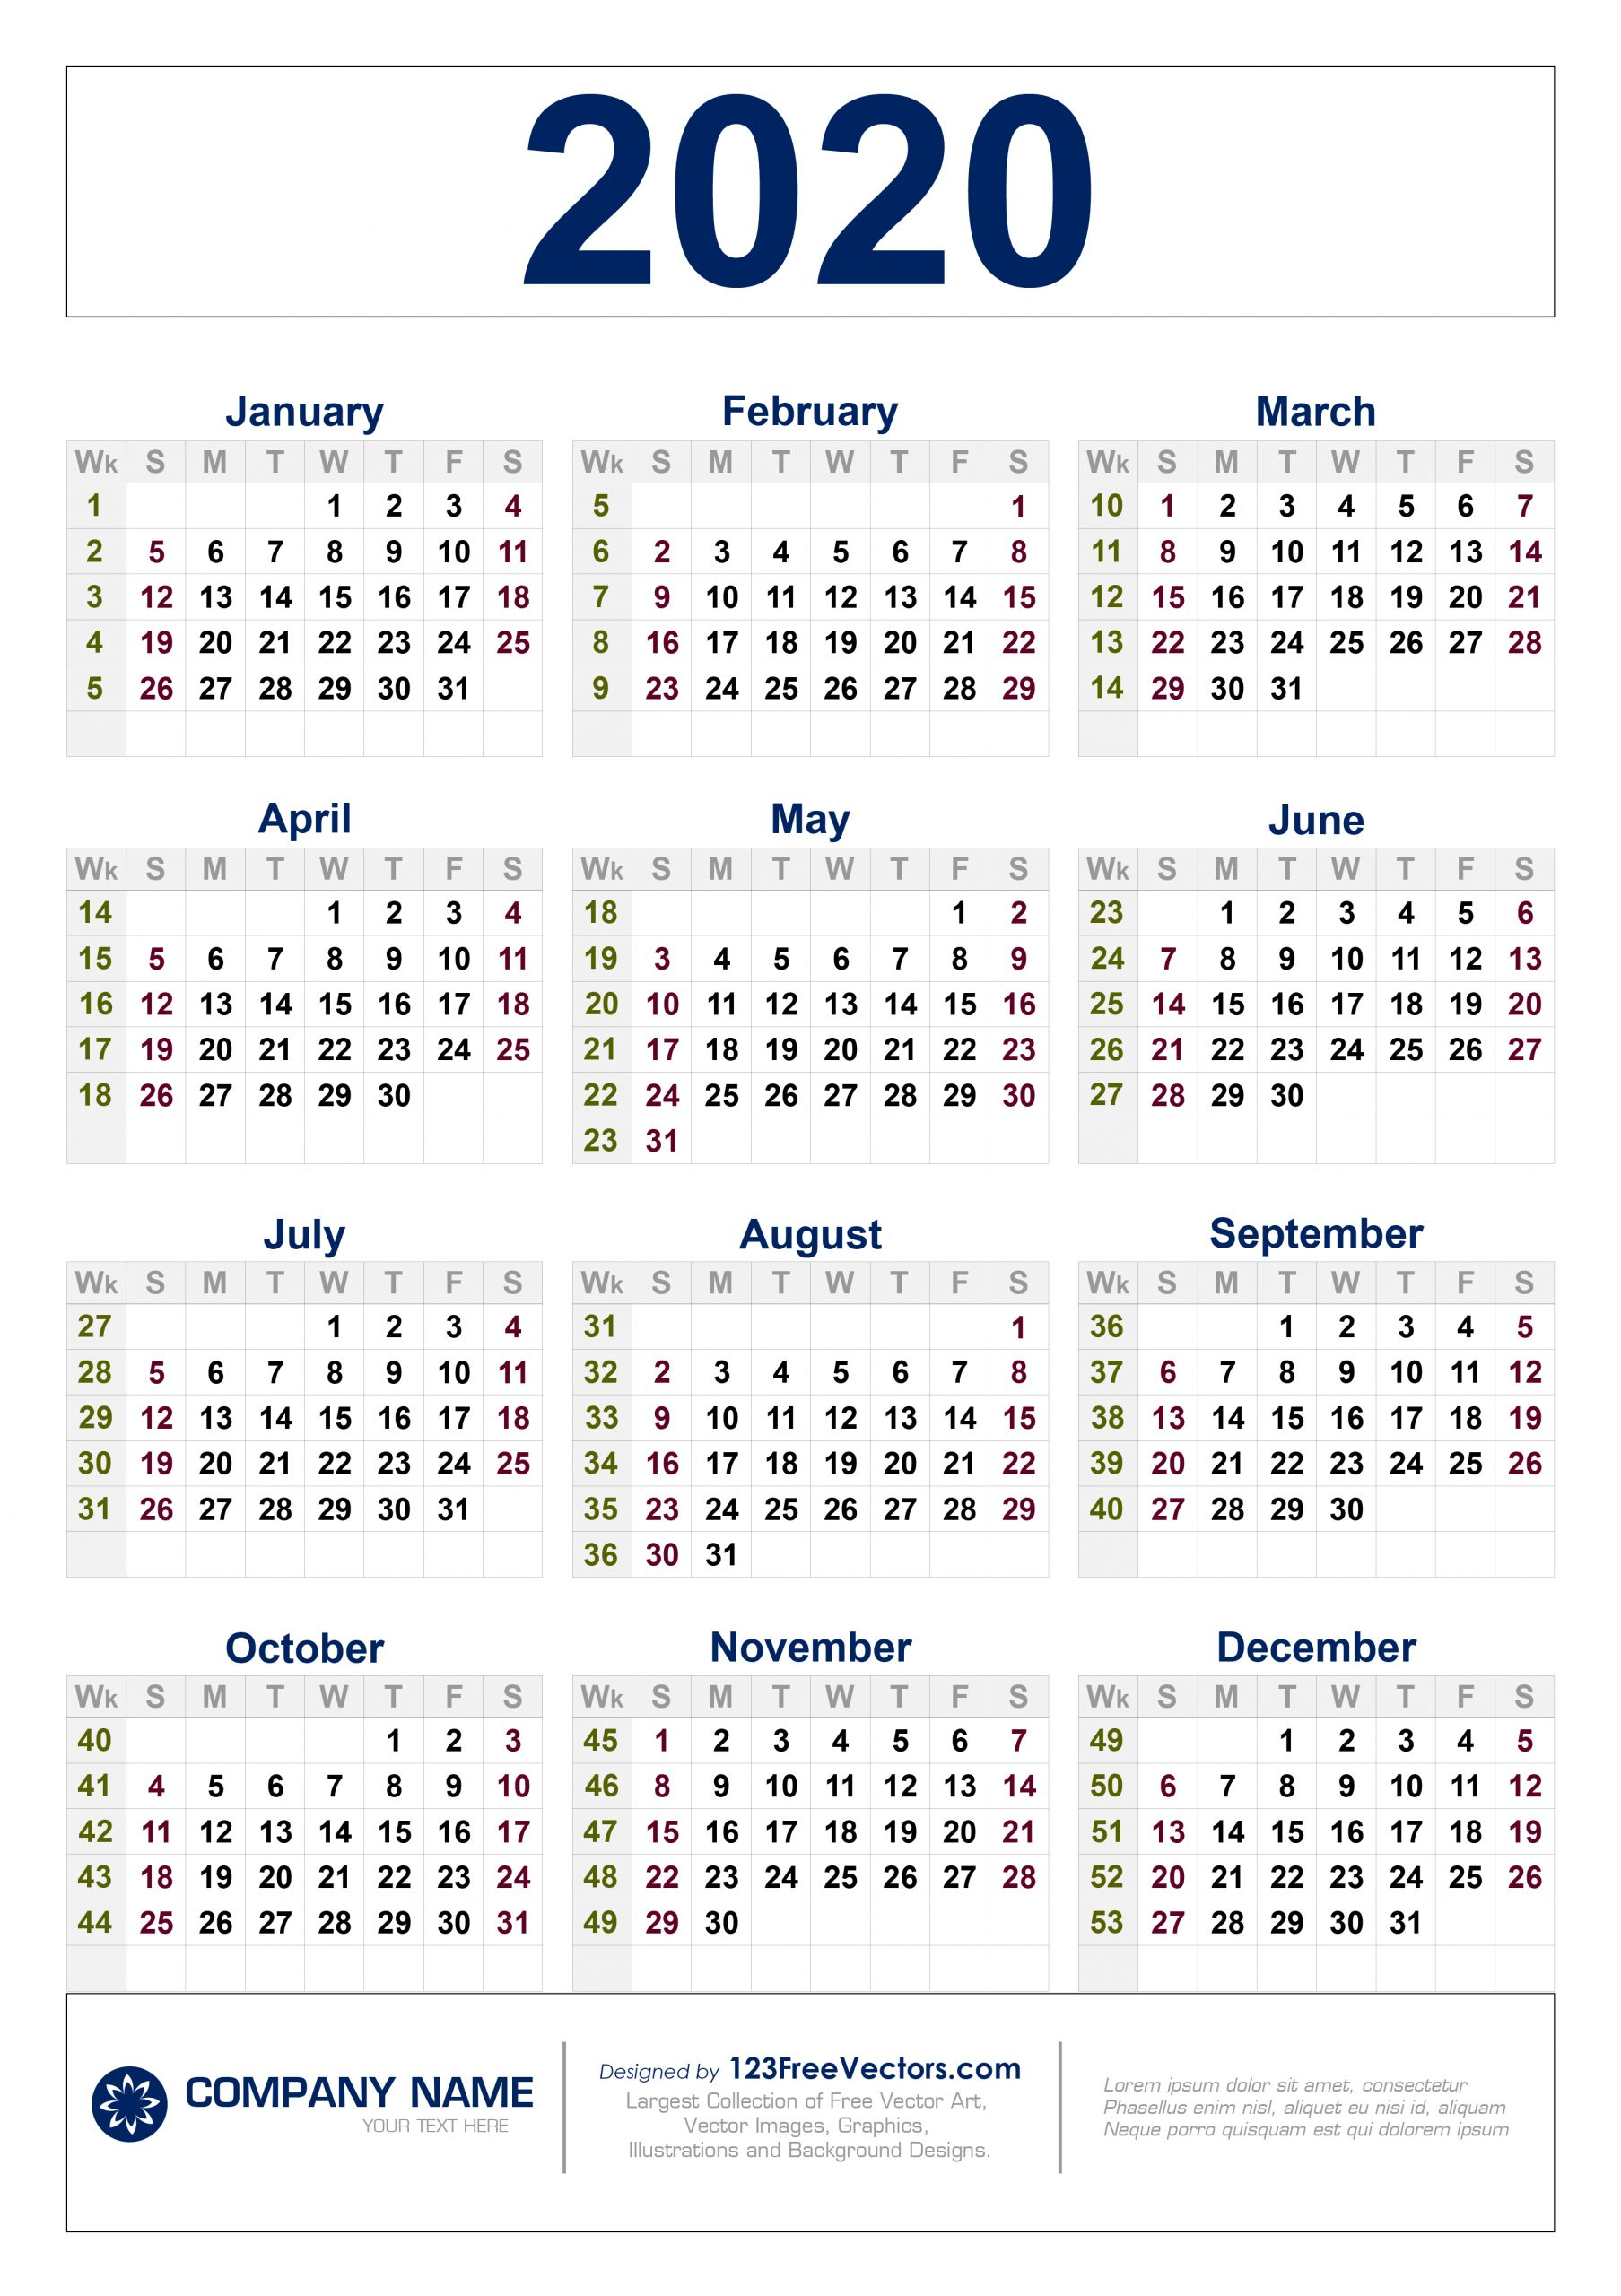 Free Download 2020 Calendar With Week Numbers